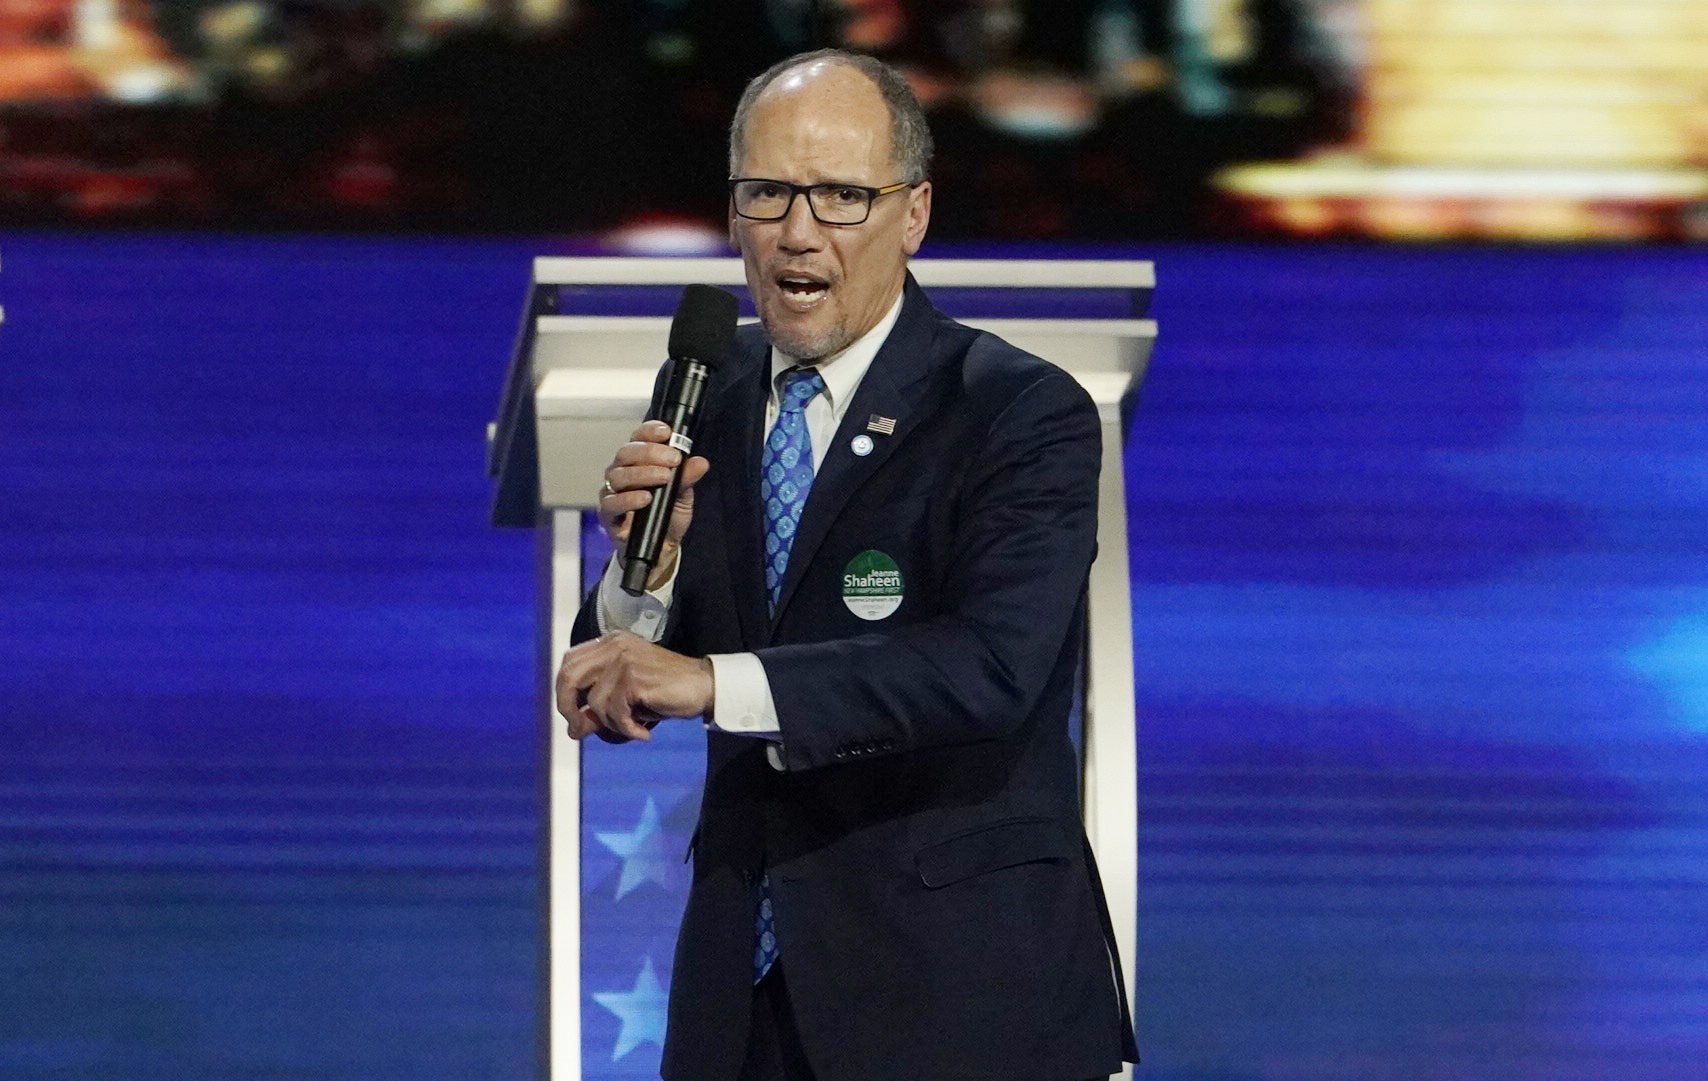 Democratic National Committee Chairman Tom Perez speaks to the crowd before the start of the Democratic 2020 U.S. presidential candidates debate in Manchester, New Hampshire, U.S., February 7, 2020. REUTERS/Brian Snyder